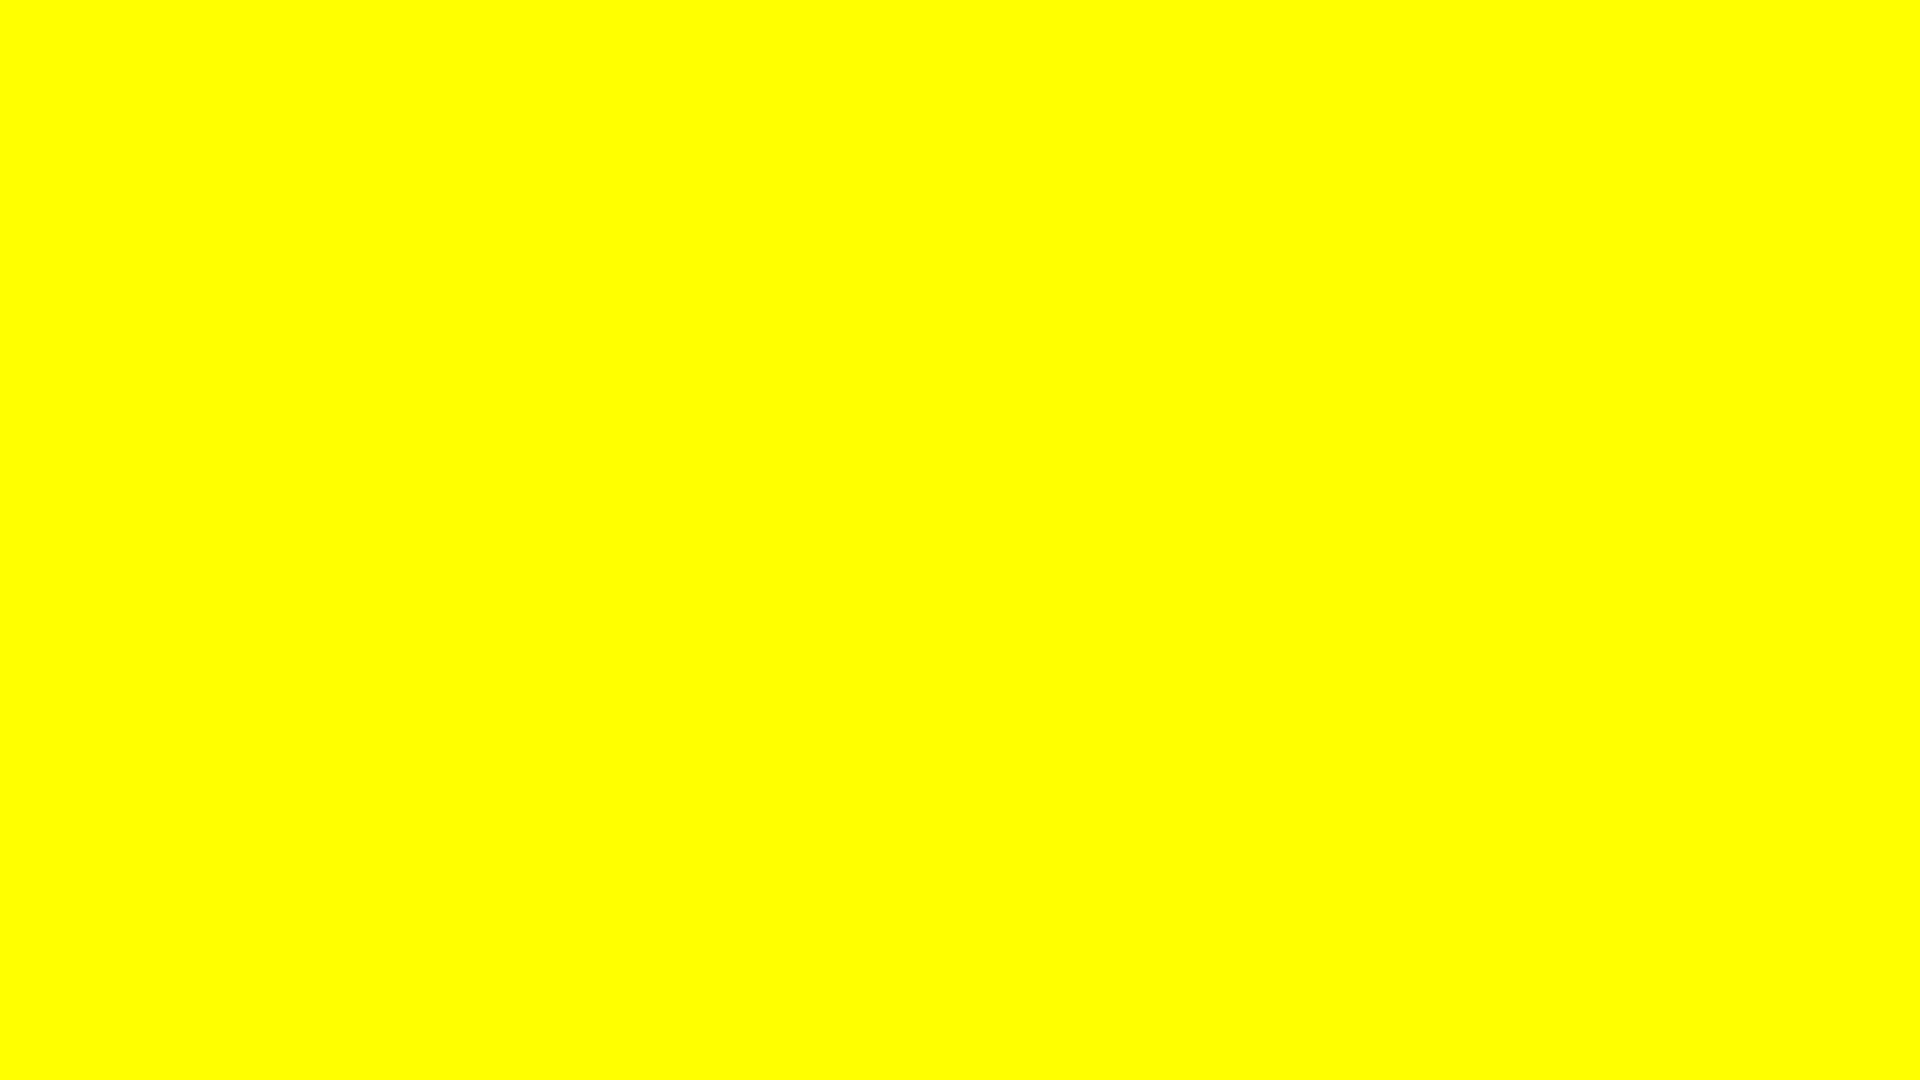 Yellow Color Wallpapers - Top Free Yellow Color ...